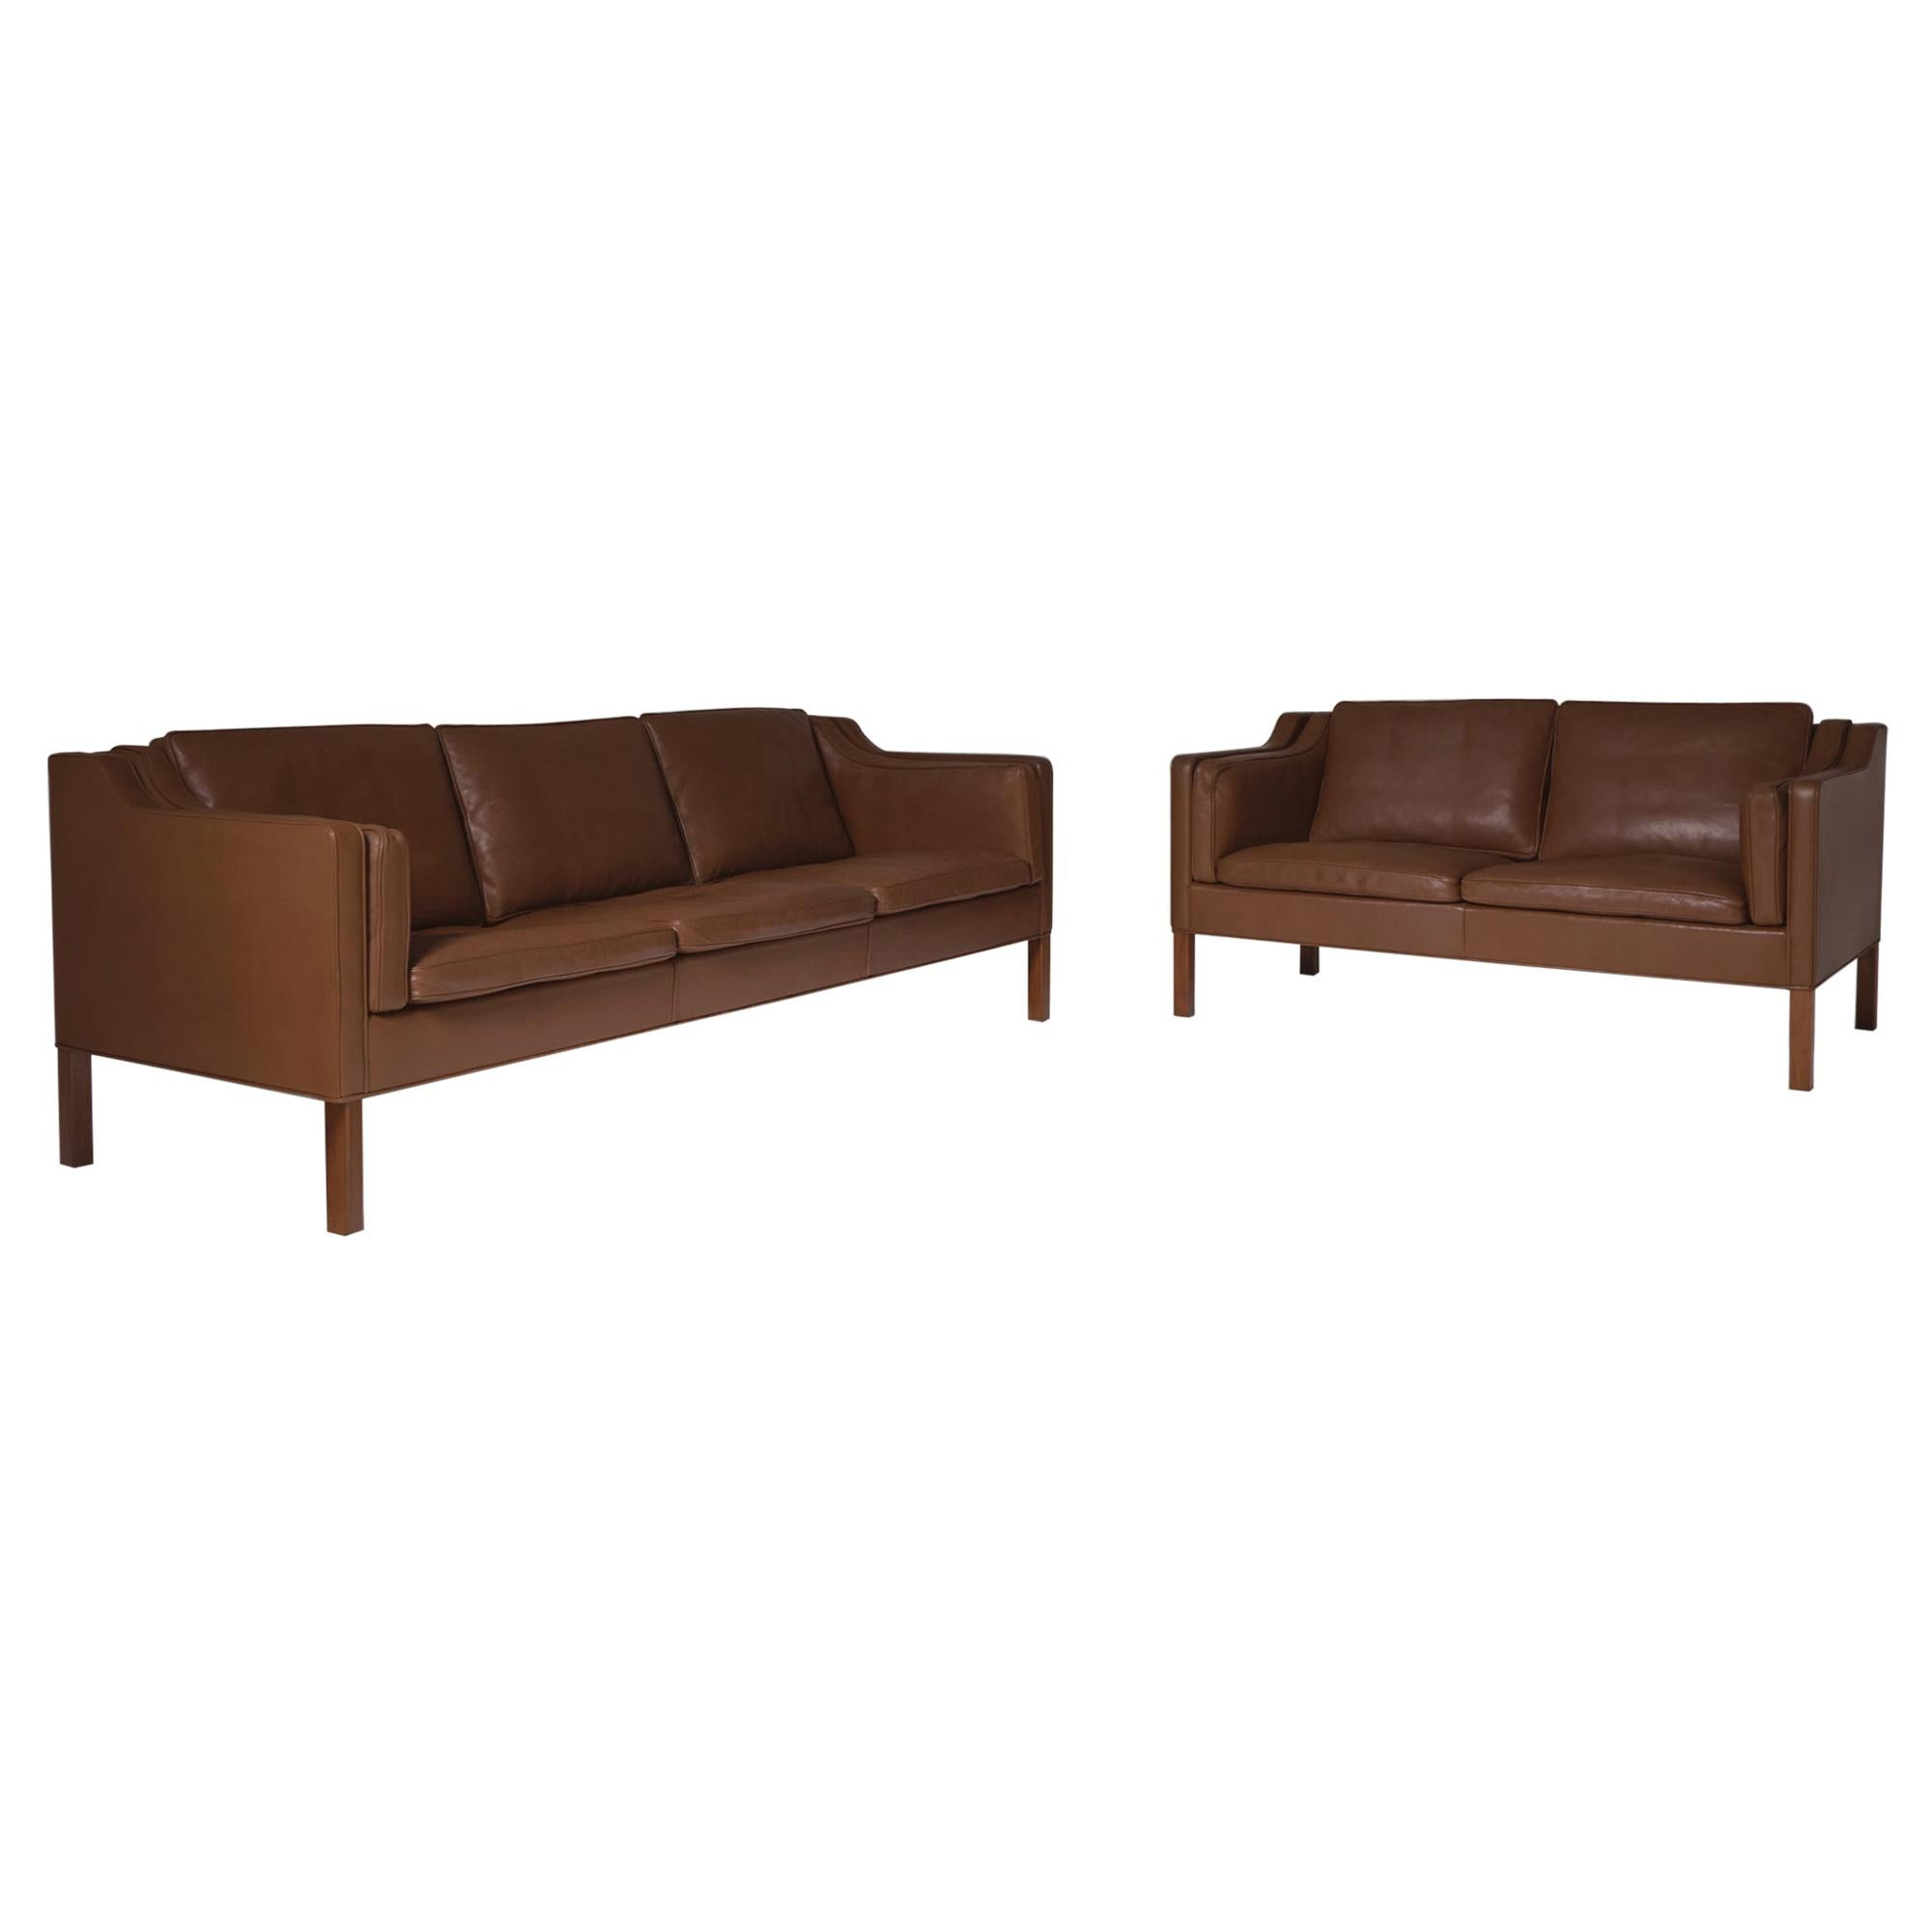 Børge Mogensen 2213 & 2212 Sofa Set for Fredericia in Brown Lea